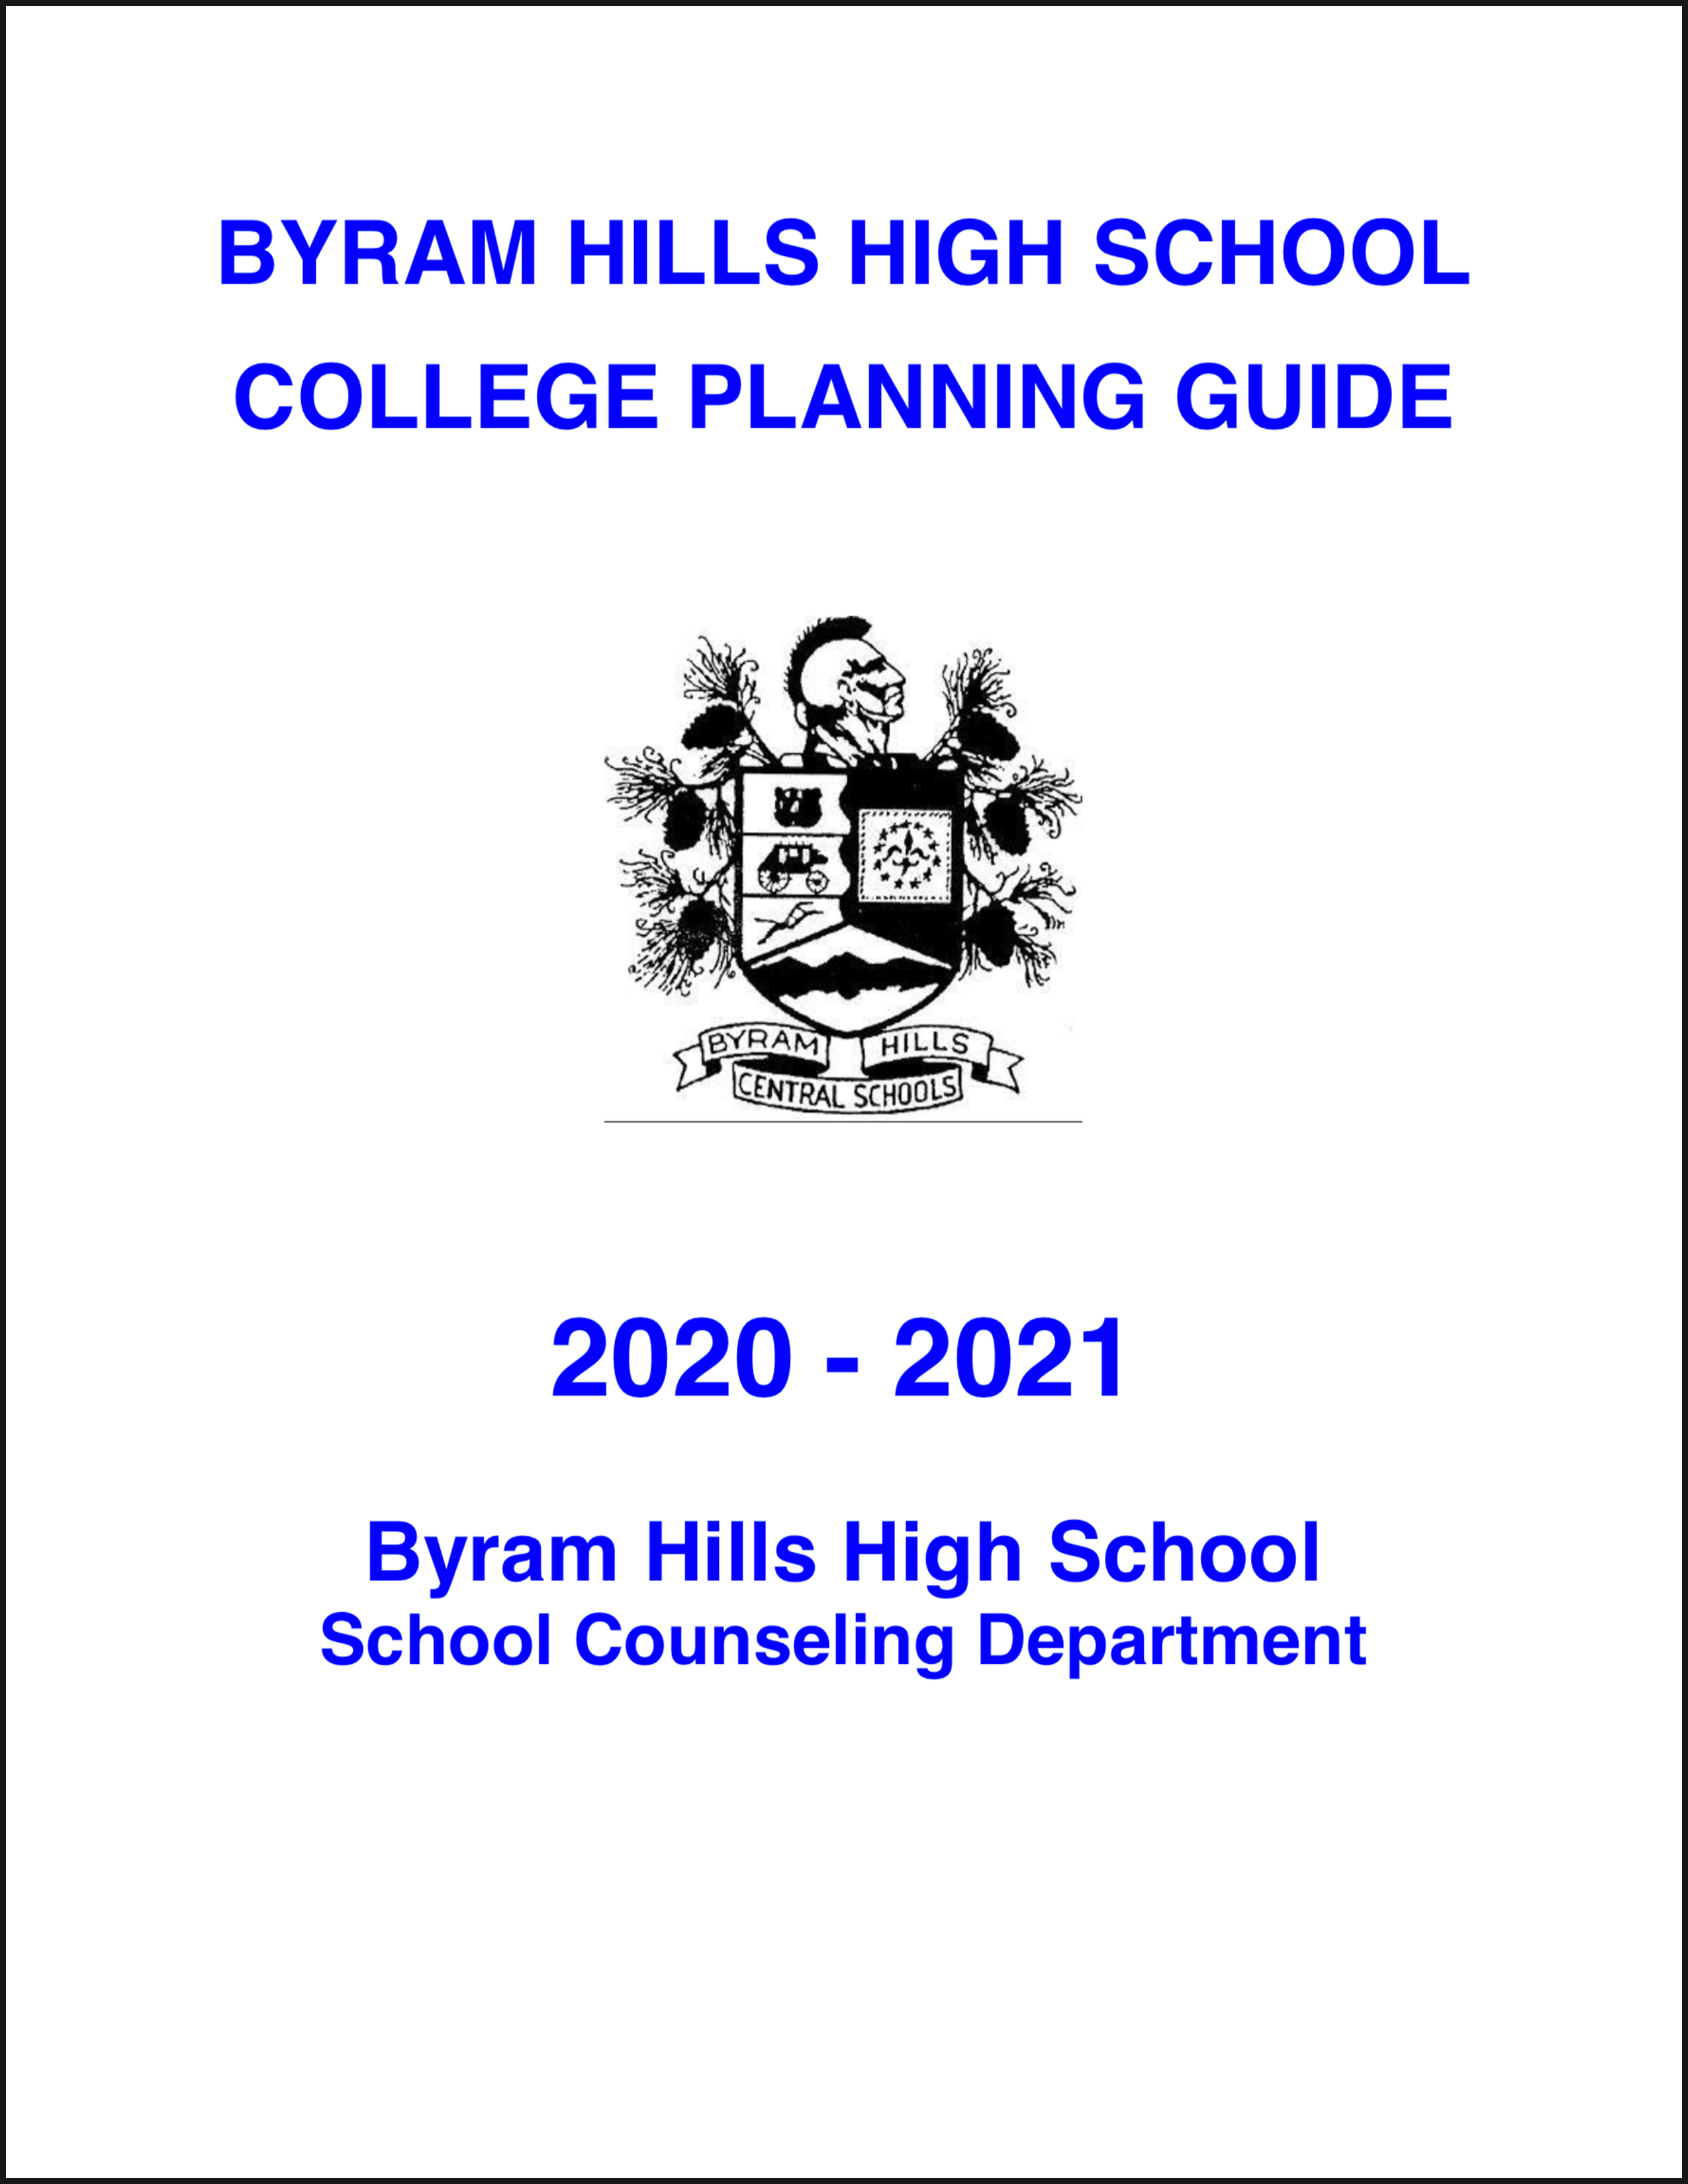 BHHS College Planning Guide 2020-2021